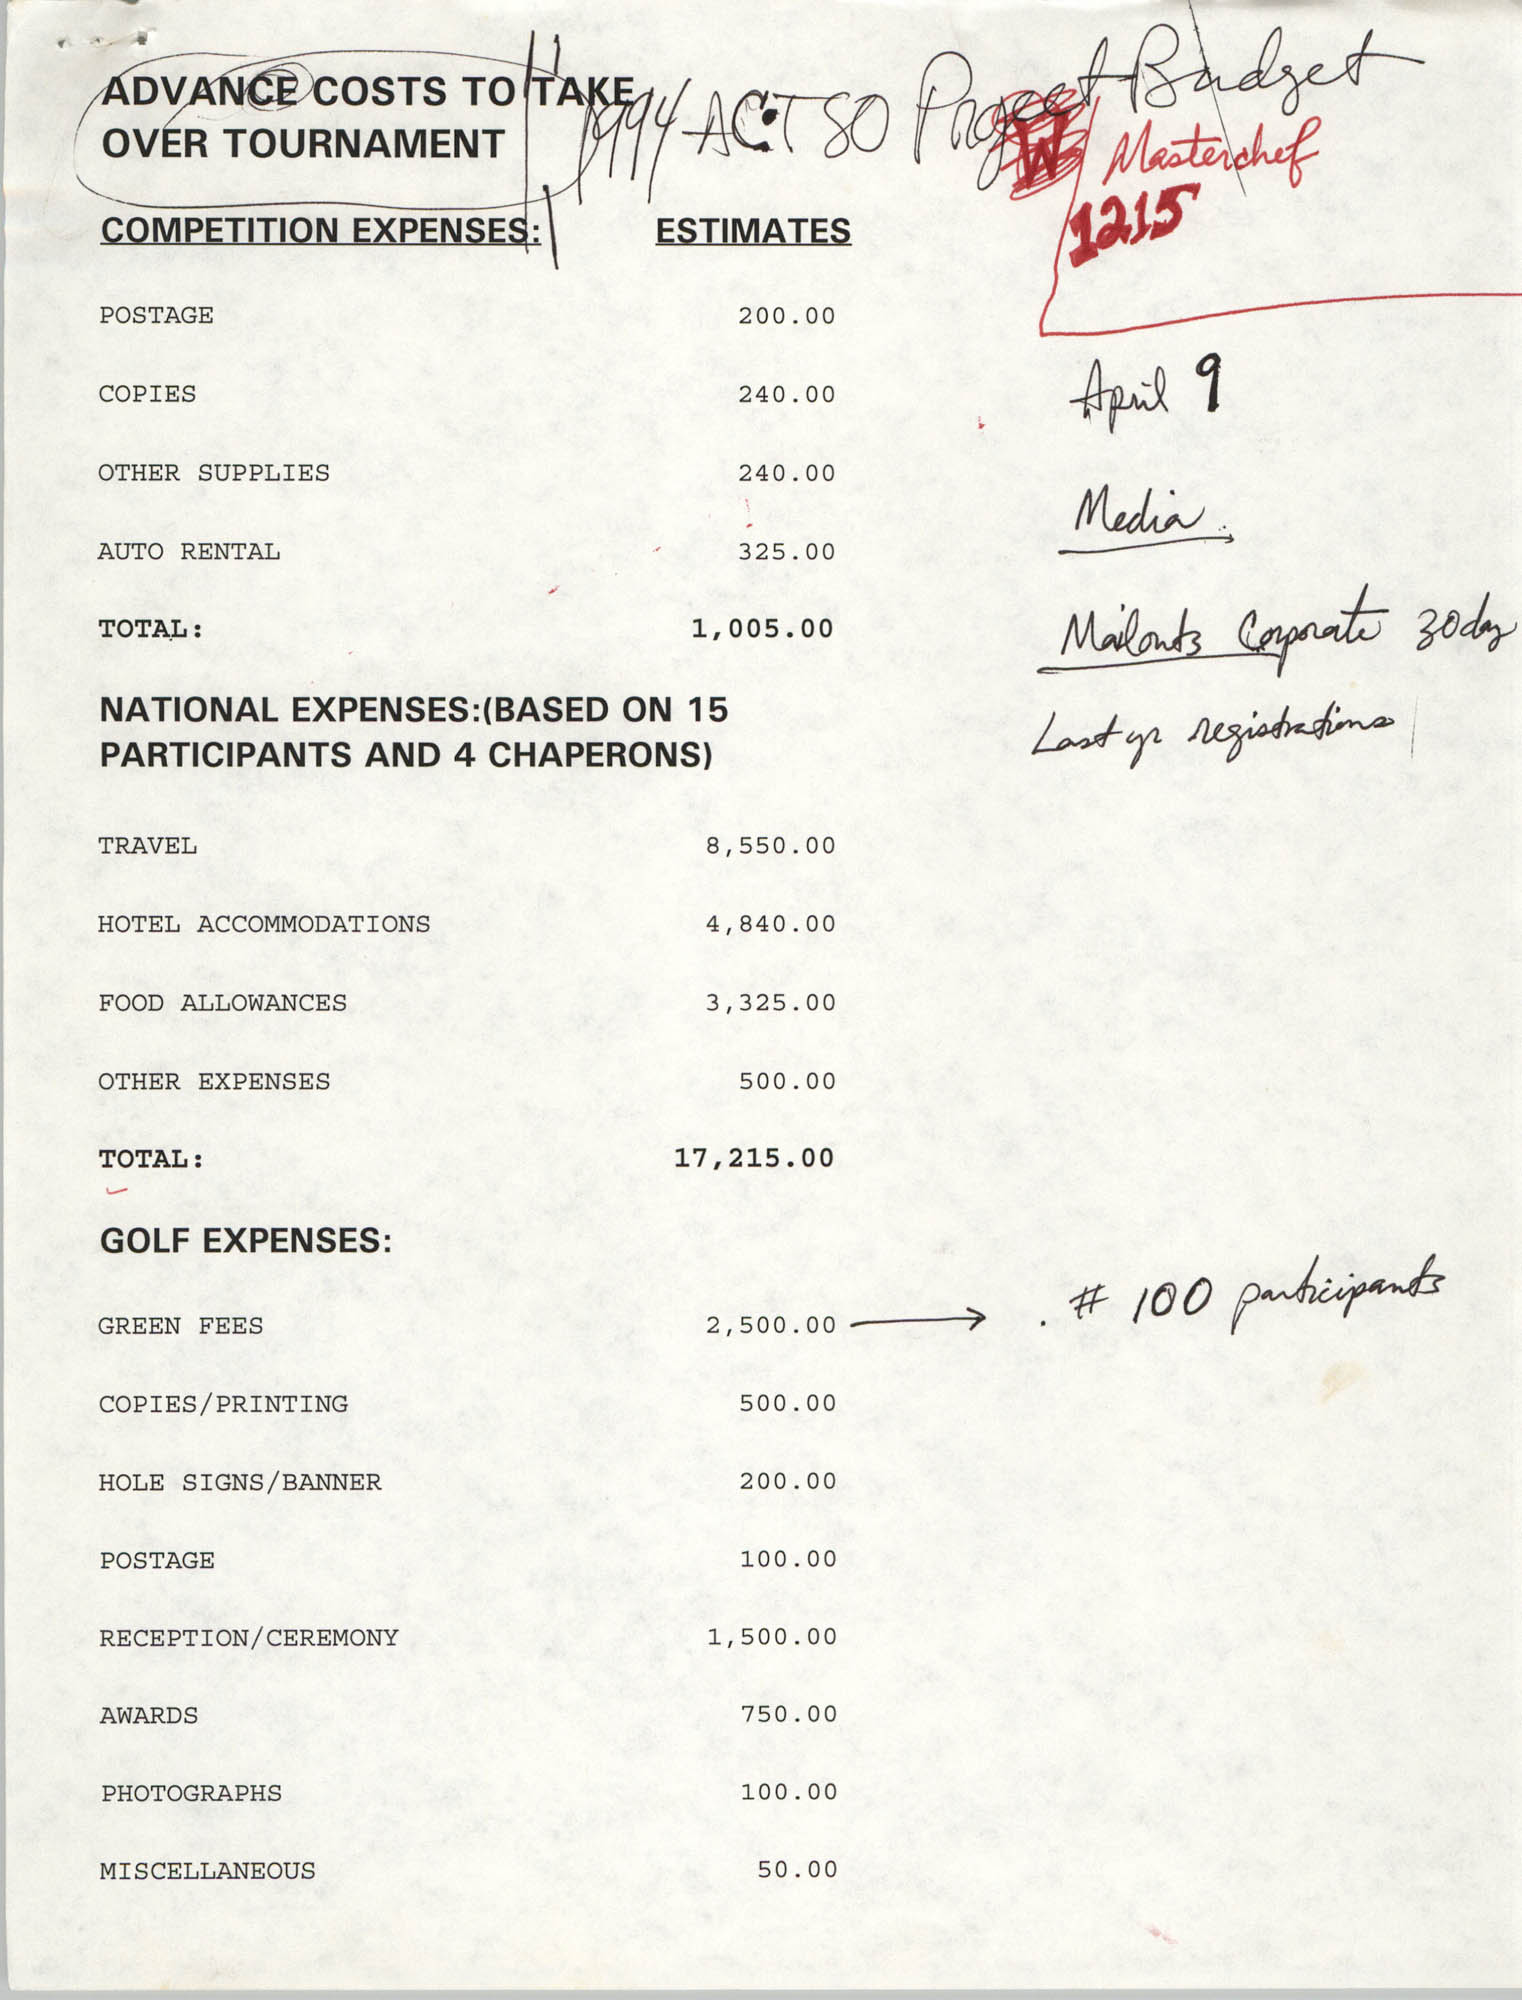 Budget,  Advance Costs to Take Over Tournament, 1994 ACT-SO Project